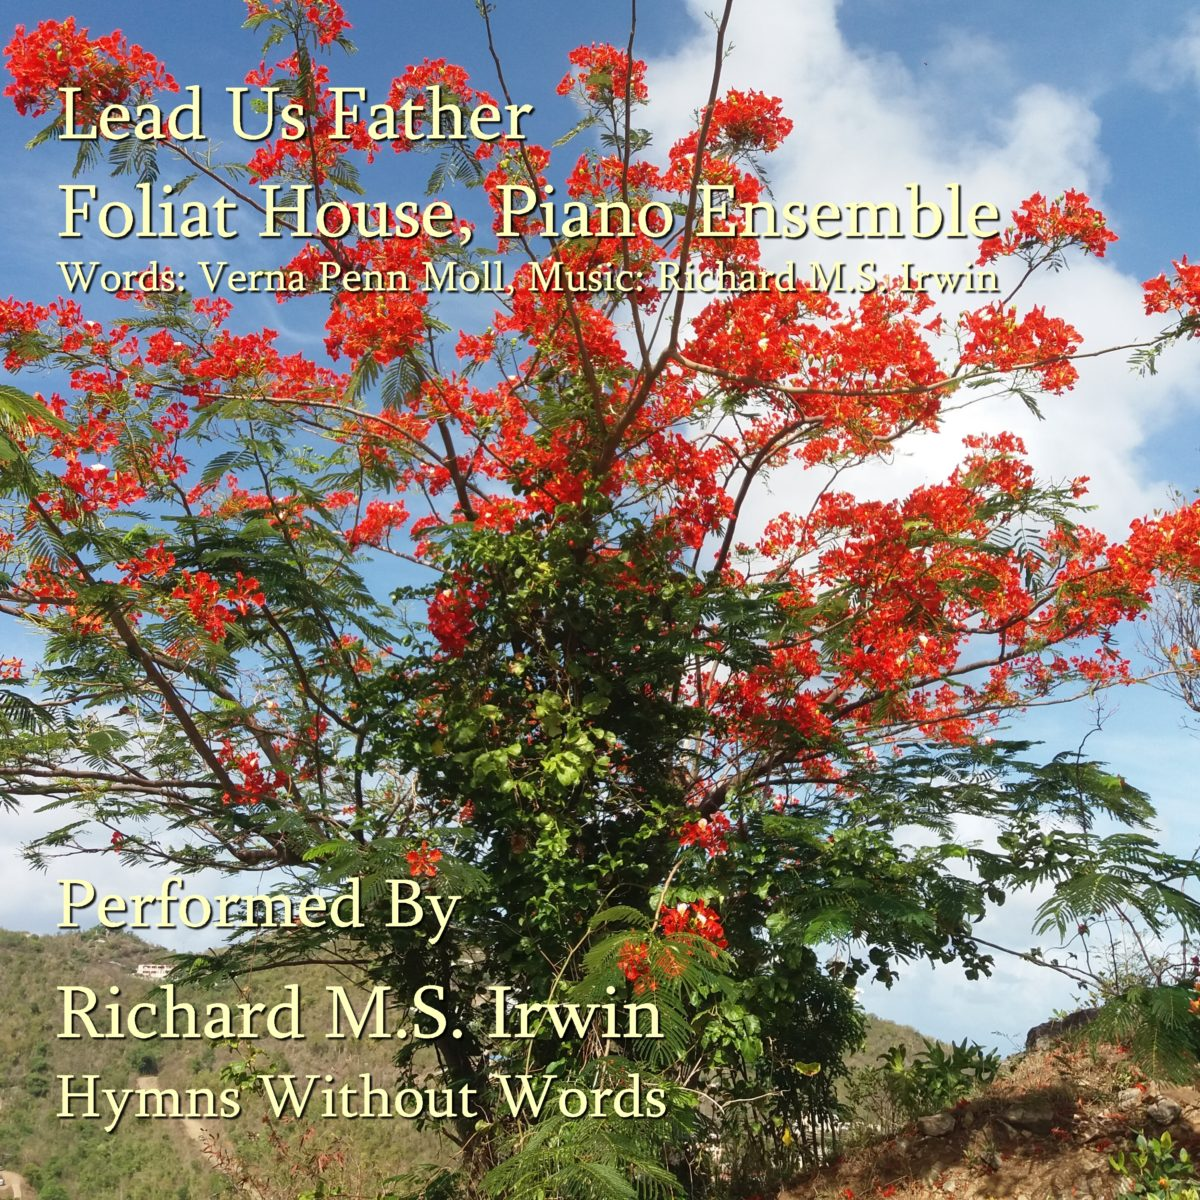 Lead Us Father Gently (Foliat House, Piano Ensemble, 3 Verses)